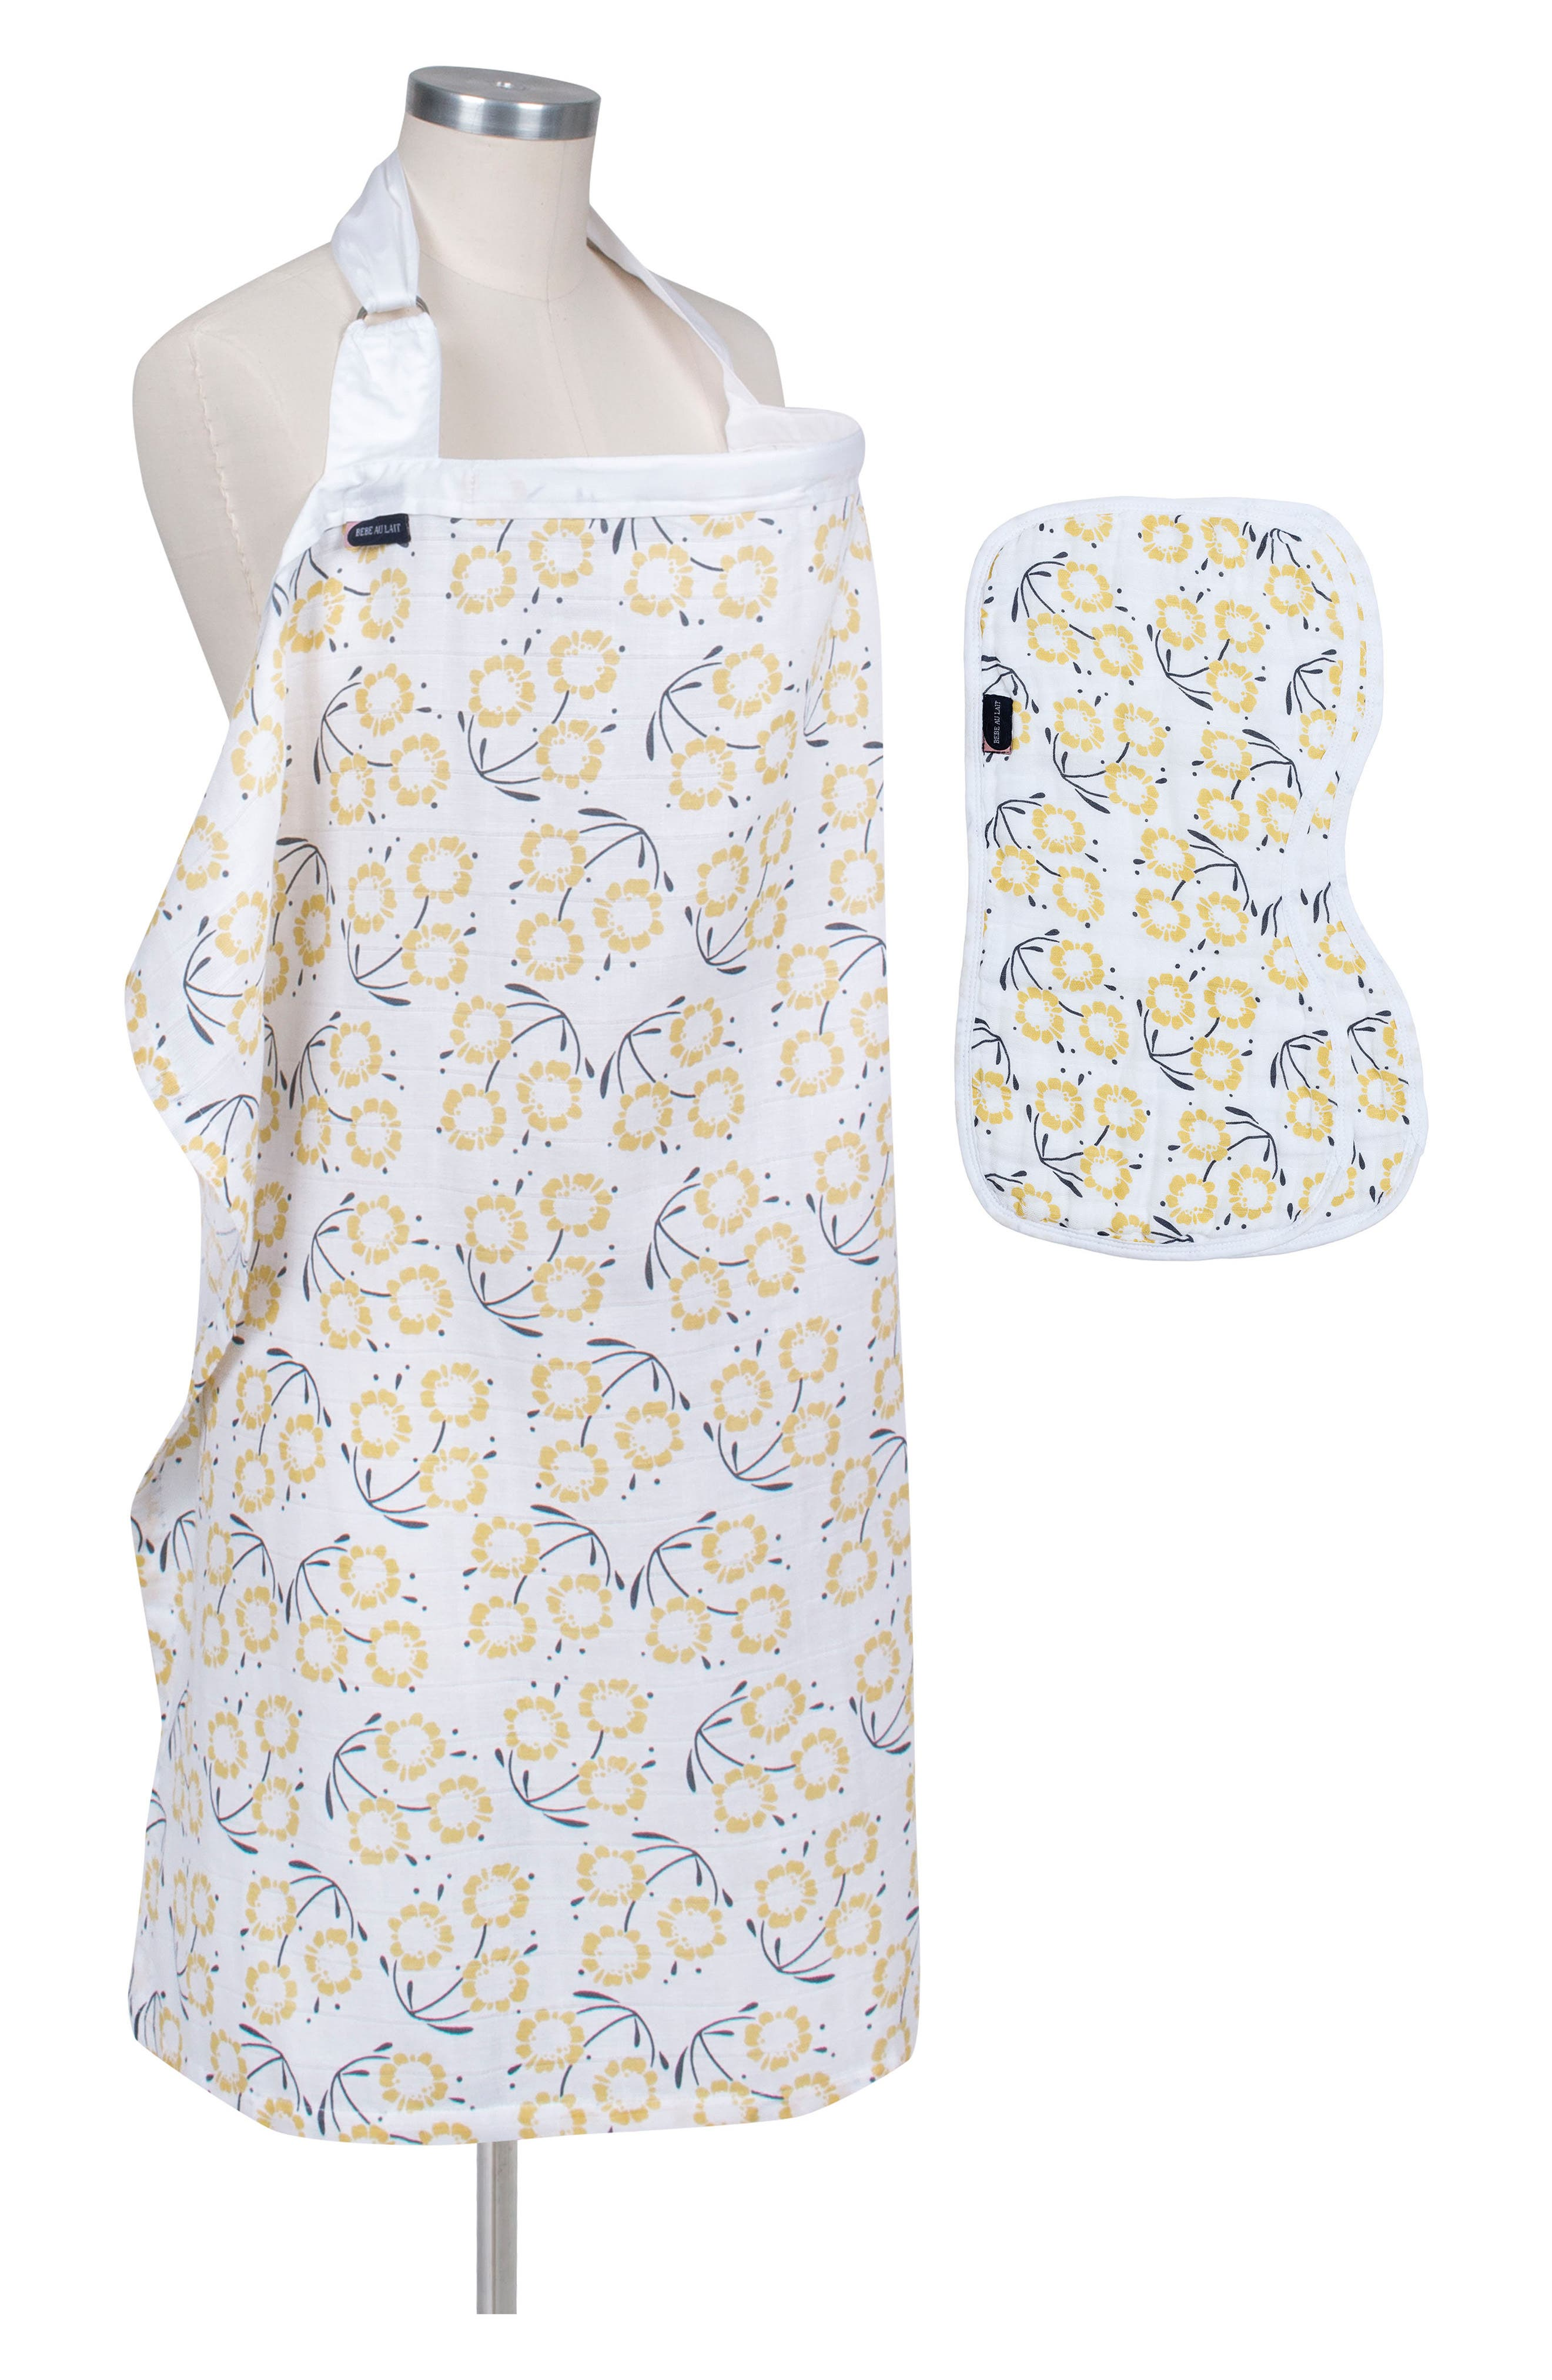 Nursing Cover & Burp Cloth Set,                             Main thumbnail 1, color,                             Sorrento